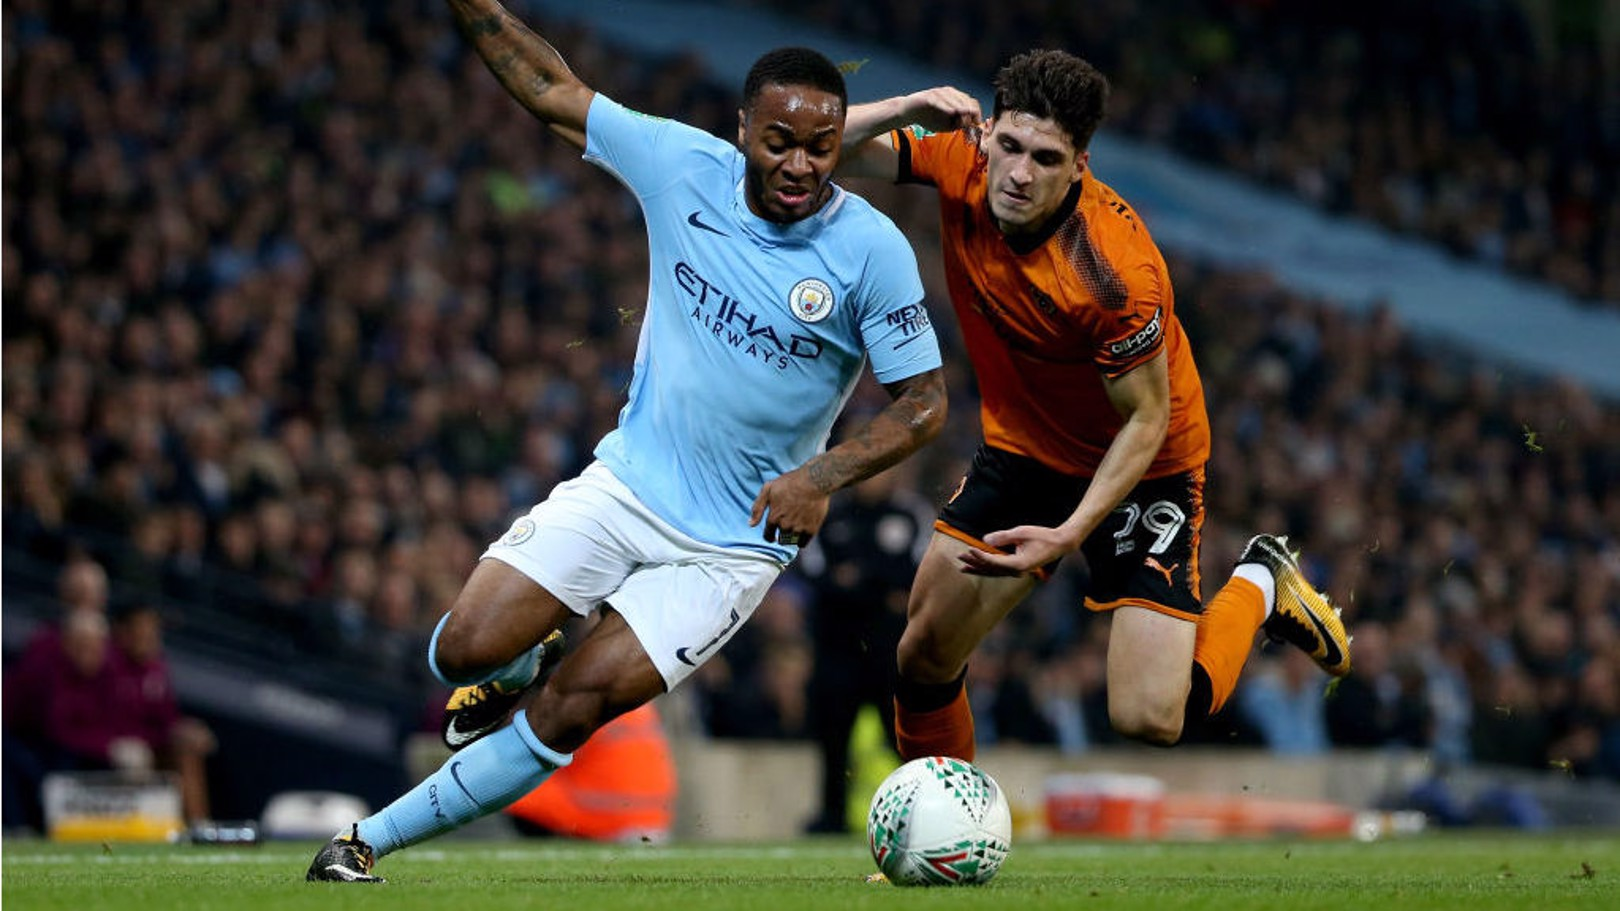 WIDE BERTH: Raheem Sterling creates havoc in the Wolves defence